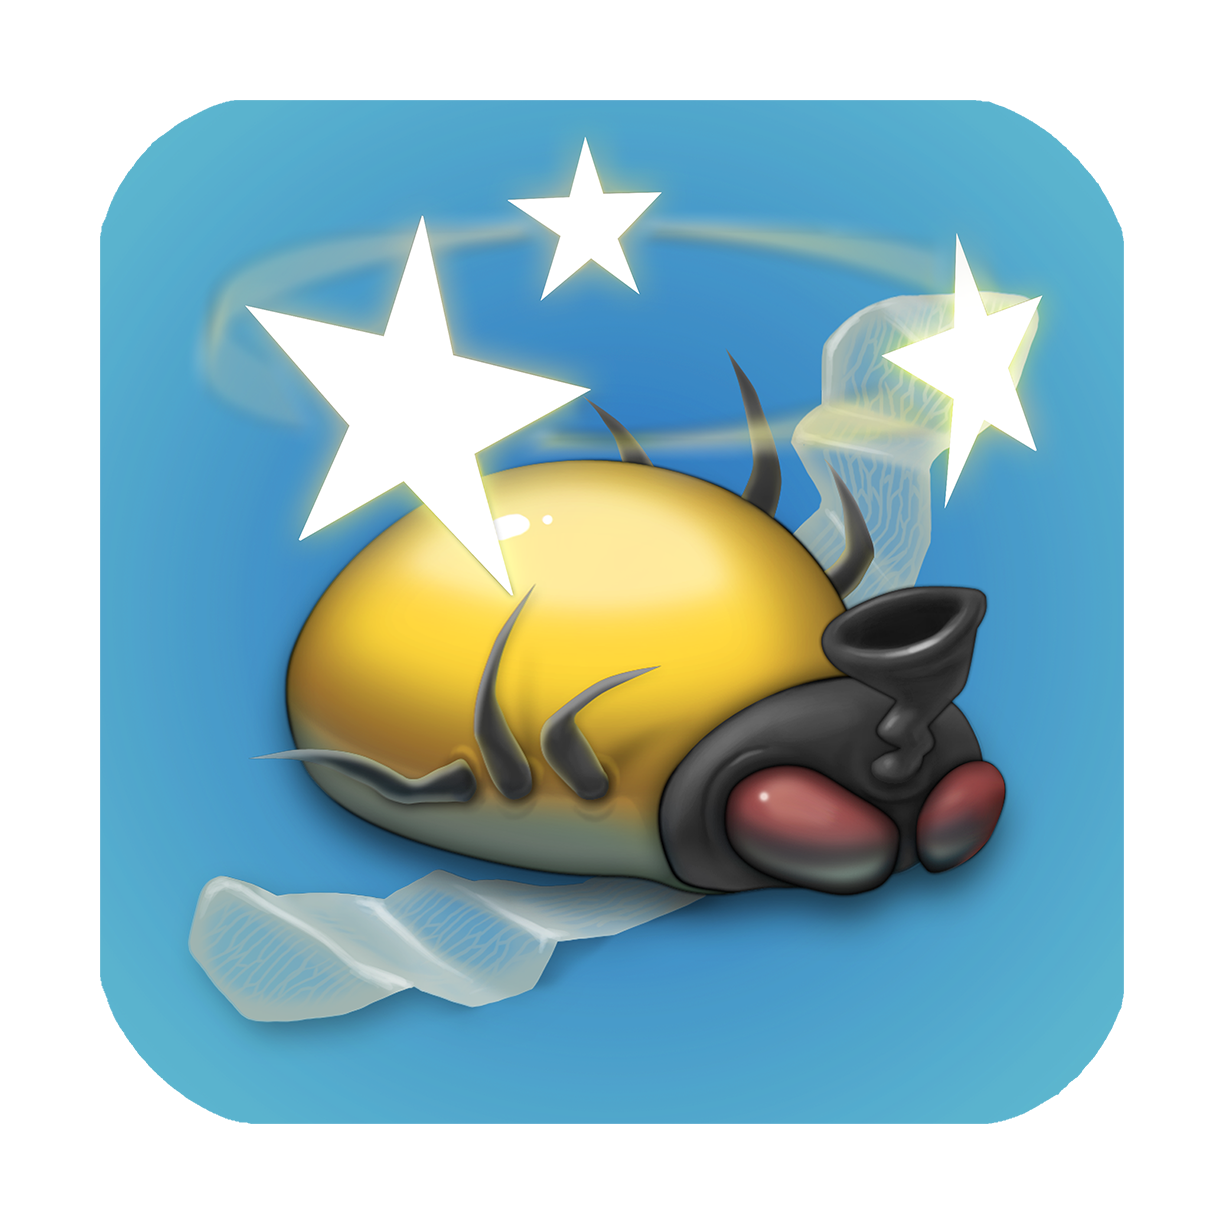 ZuZuZu icon. The game for iOS and Android.